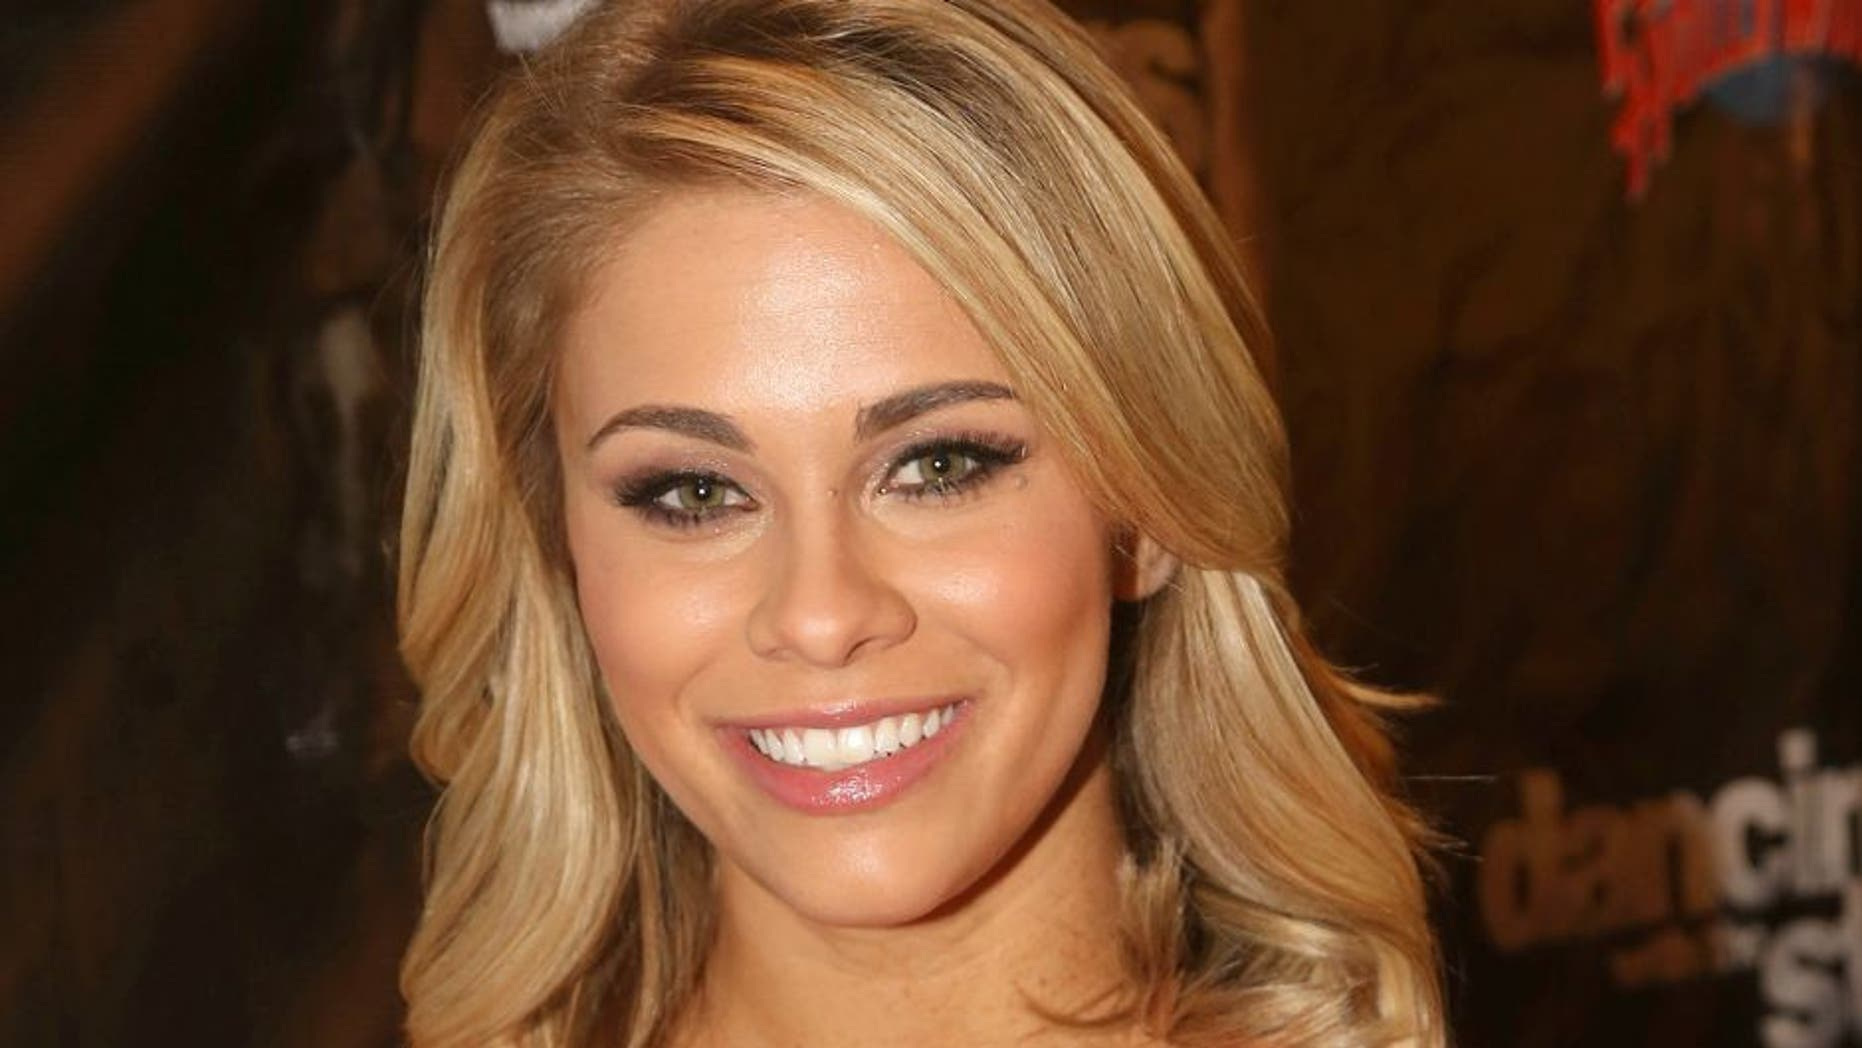 """NEW YORK, NY - MARCH 08: Paige VanZant poses at the 22nd Season Stars of ABC's """"Dancing With The Stars"""" cast announcement at Planet Hollywood Times Square on March 8, 2016 in New York City. (Photo by Bruce Glikas/FilmMagic)"""